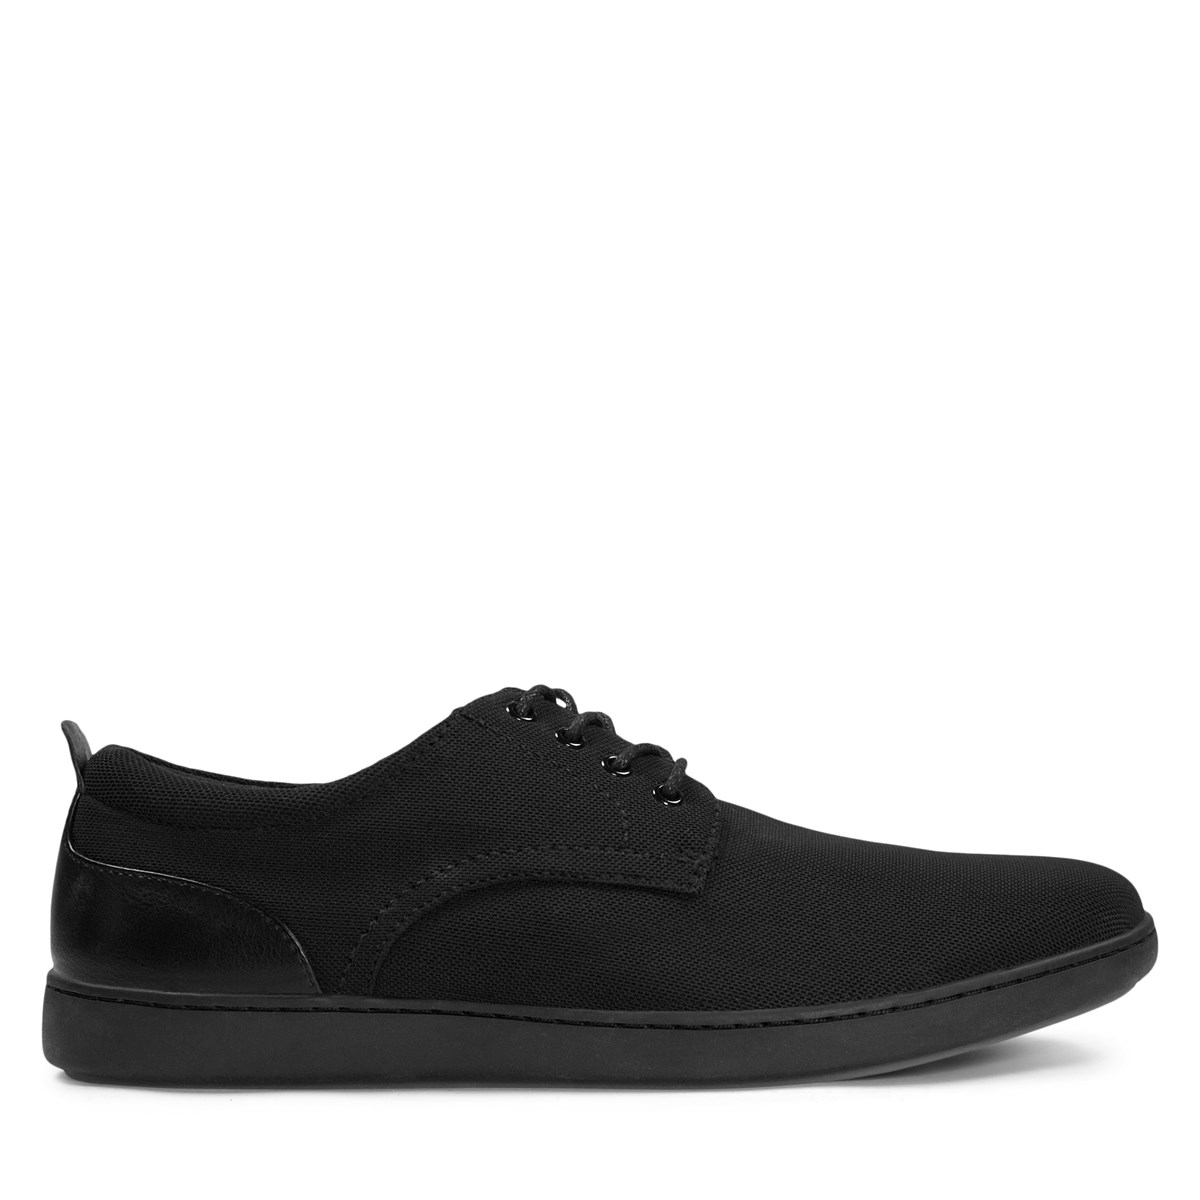 Men's Paolo Shoes in Black Mesh